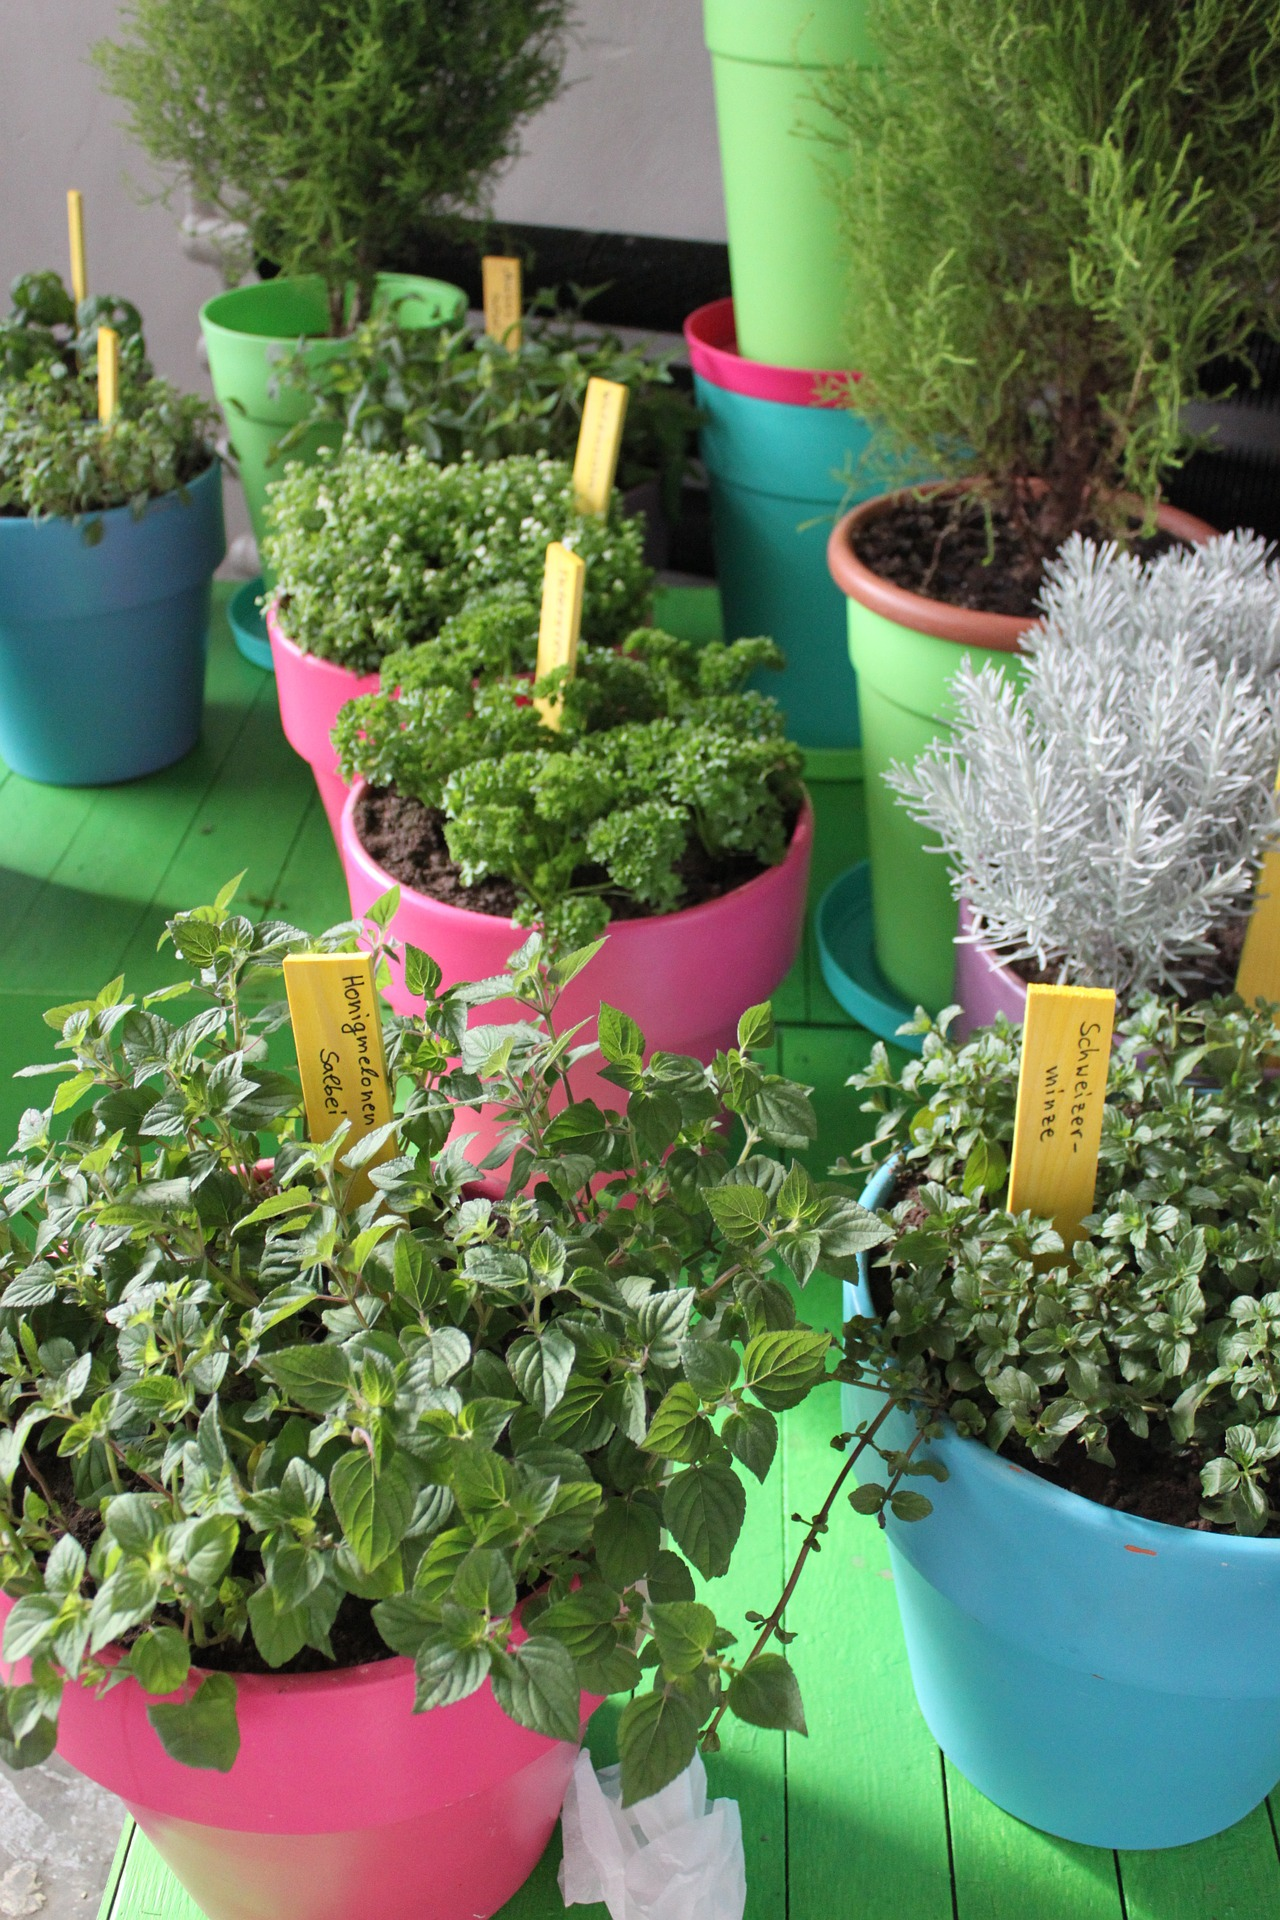 Pots of herbs in colorful planters